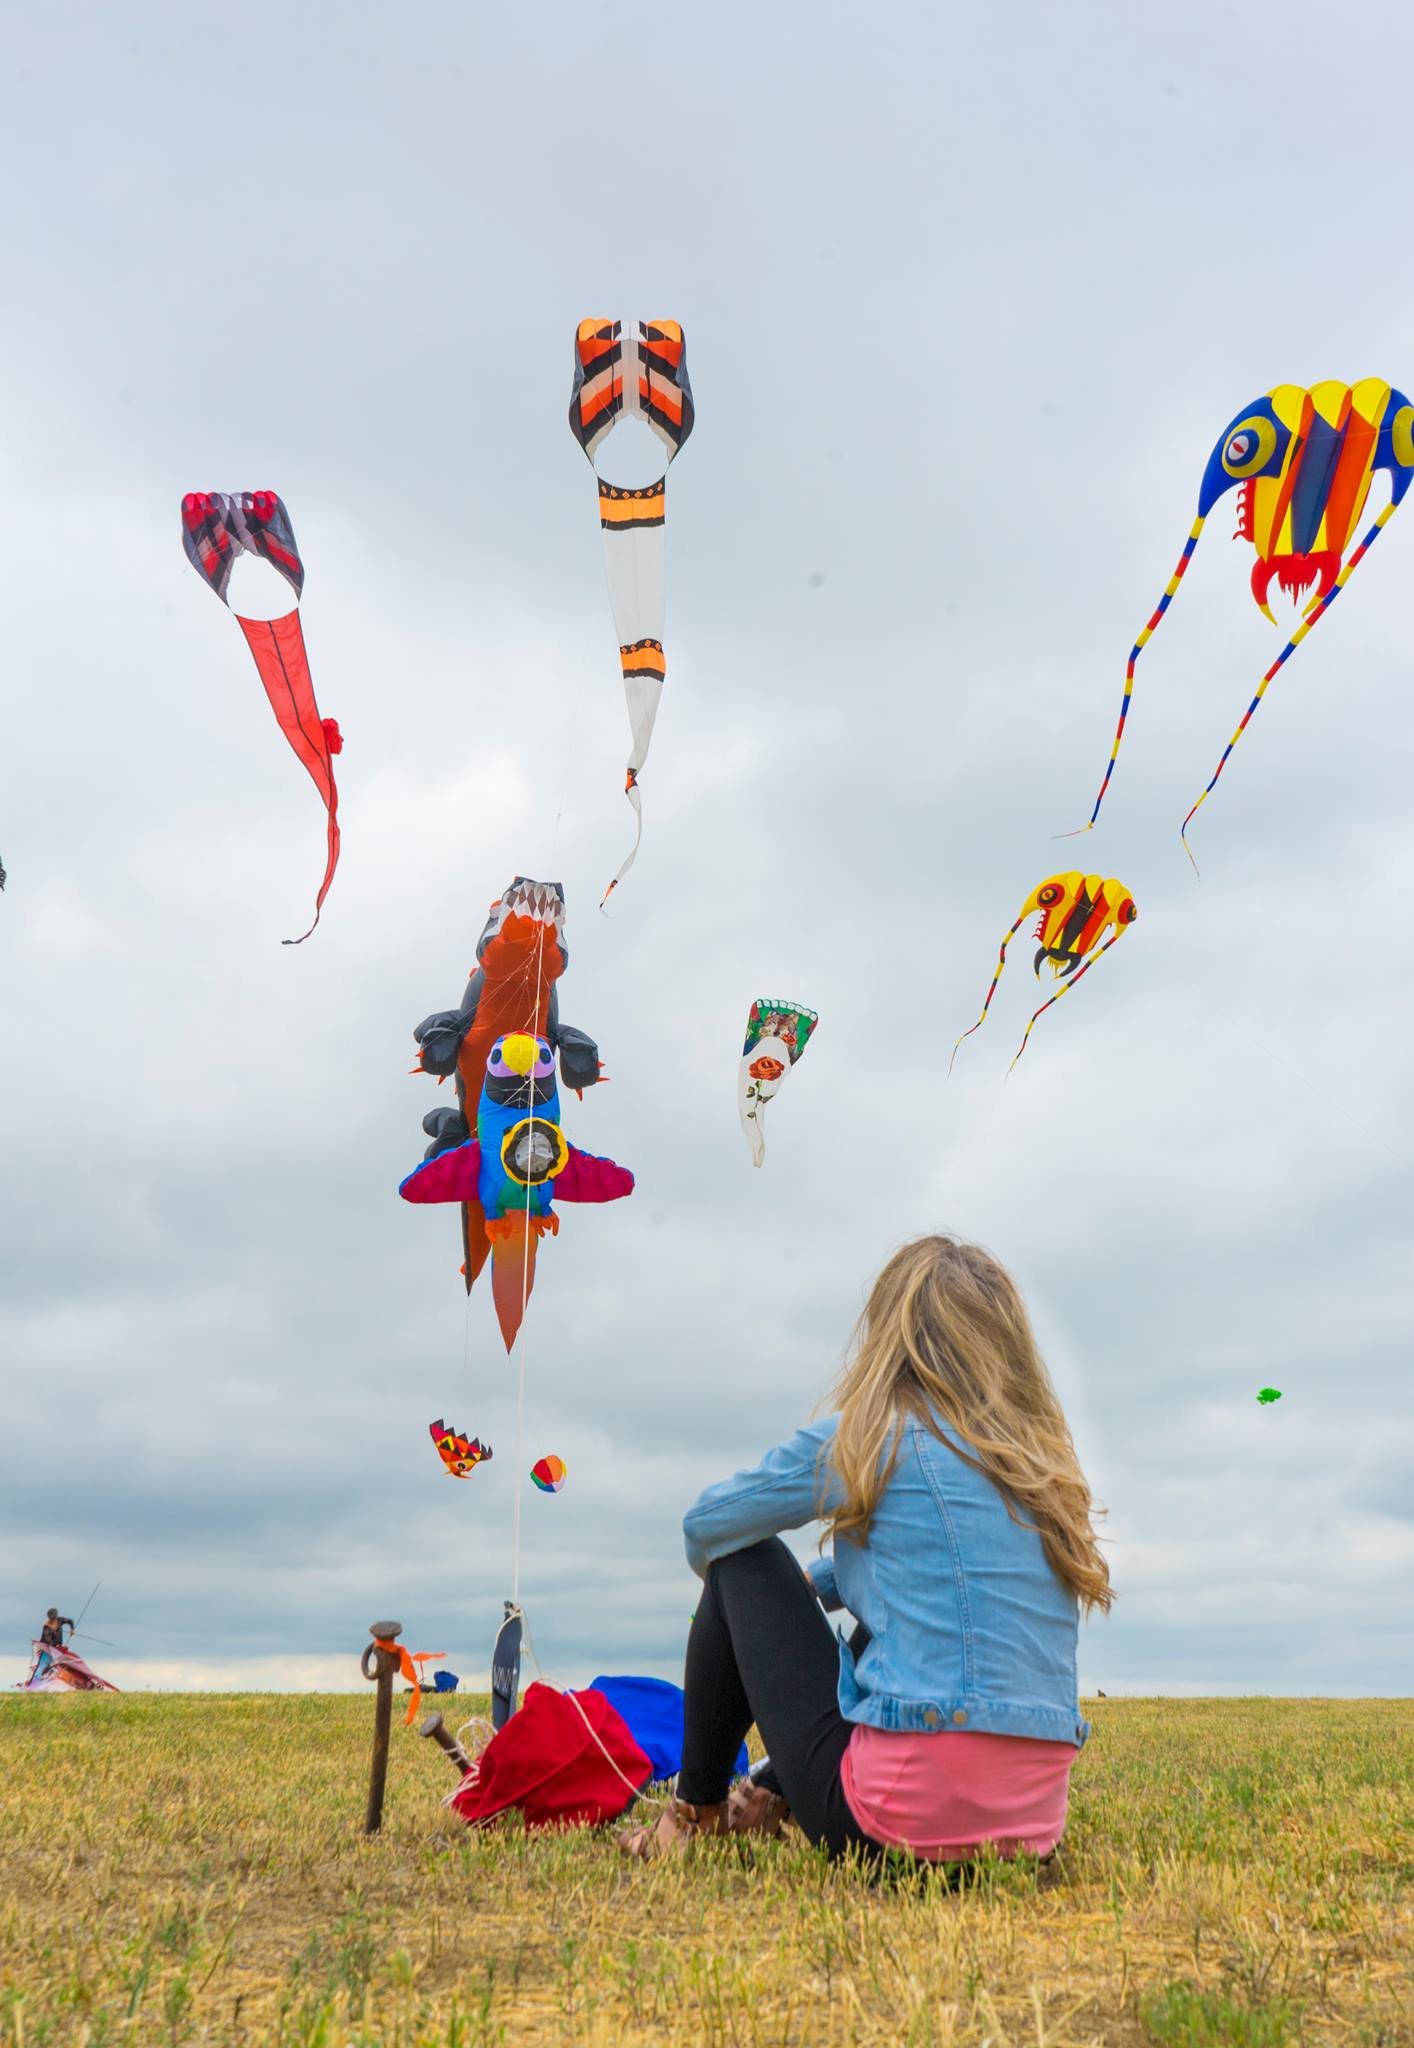 The Art Of Flying Kites At The Windscape Kite Festival